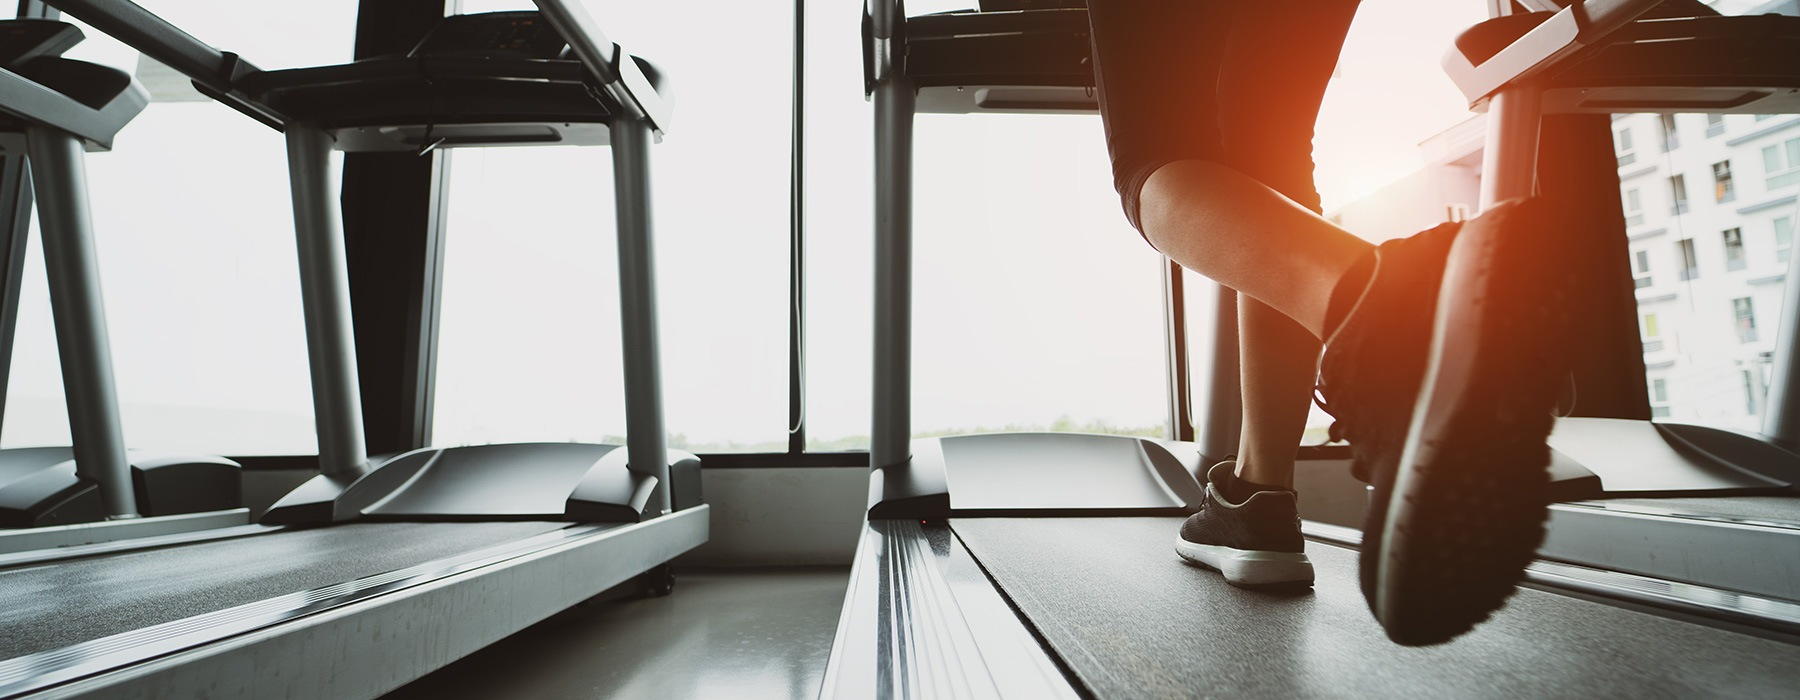 lifestyle image of a person's foot as they run on the treadmill